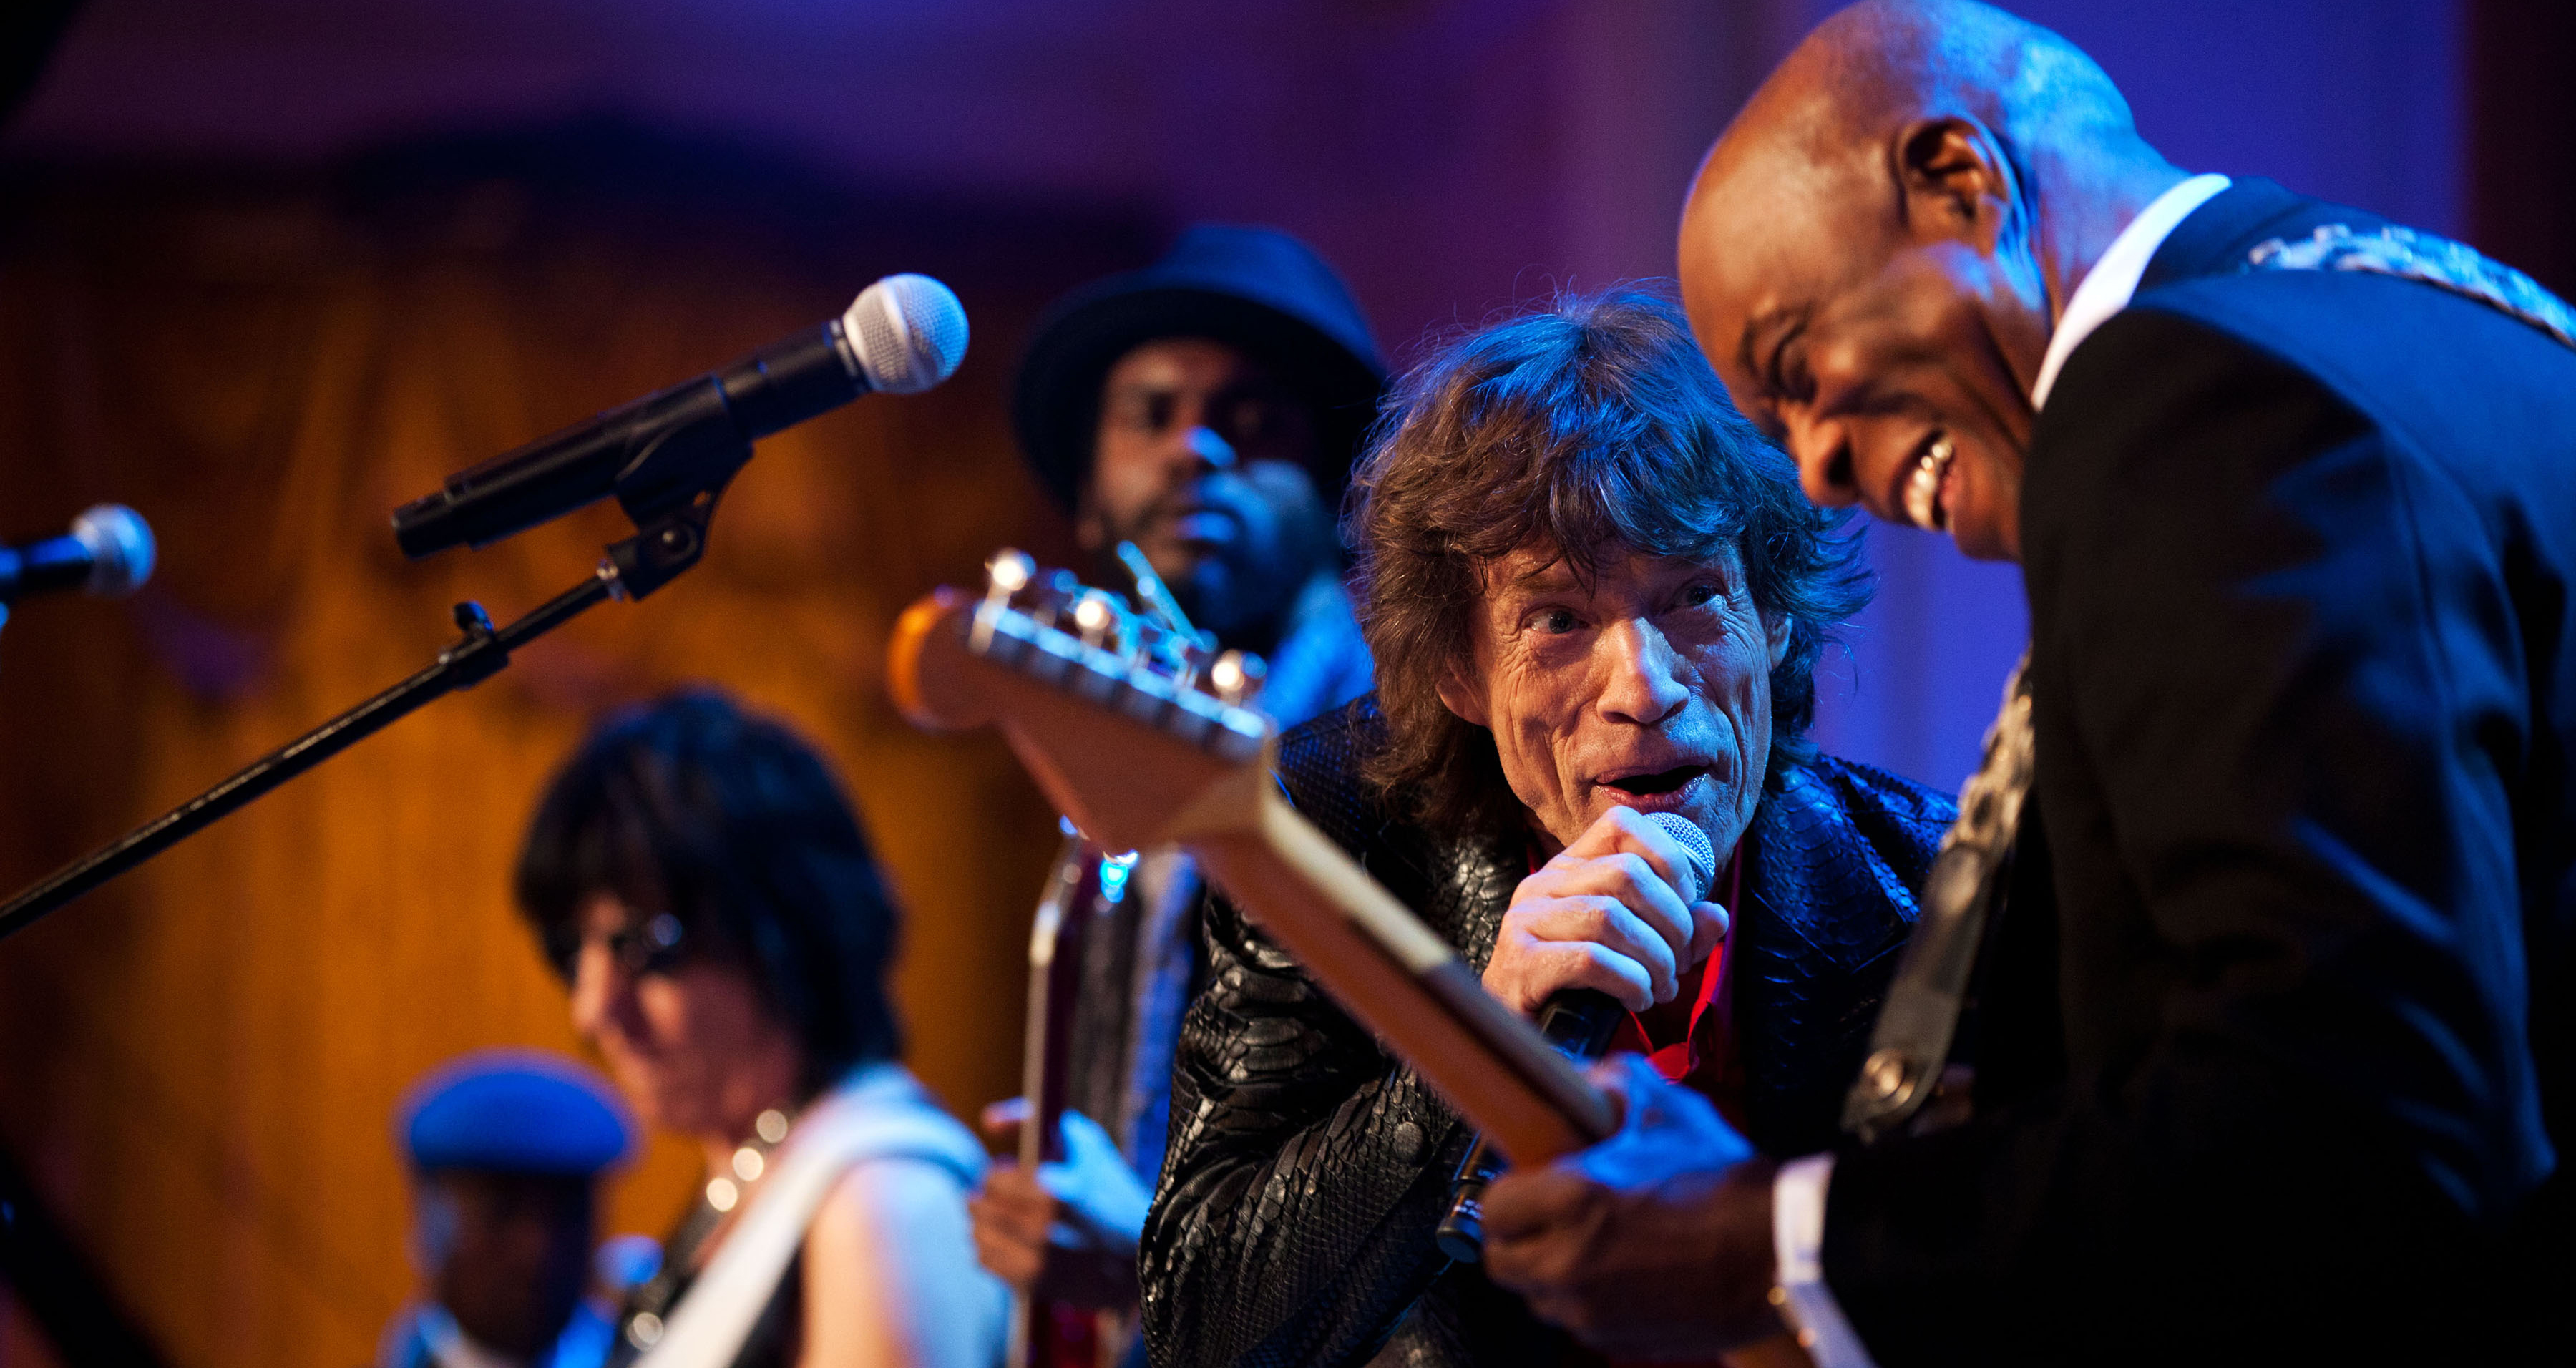 Mick Jagger performs with Jeff Beck and Buddy Guy